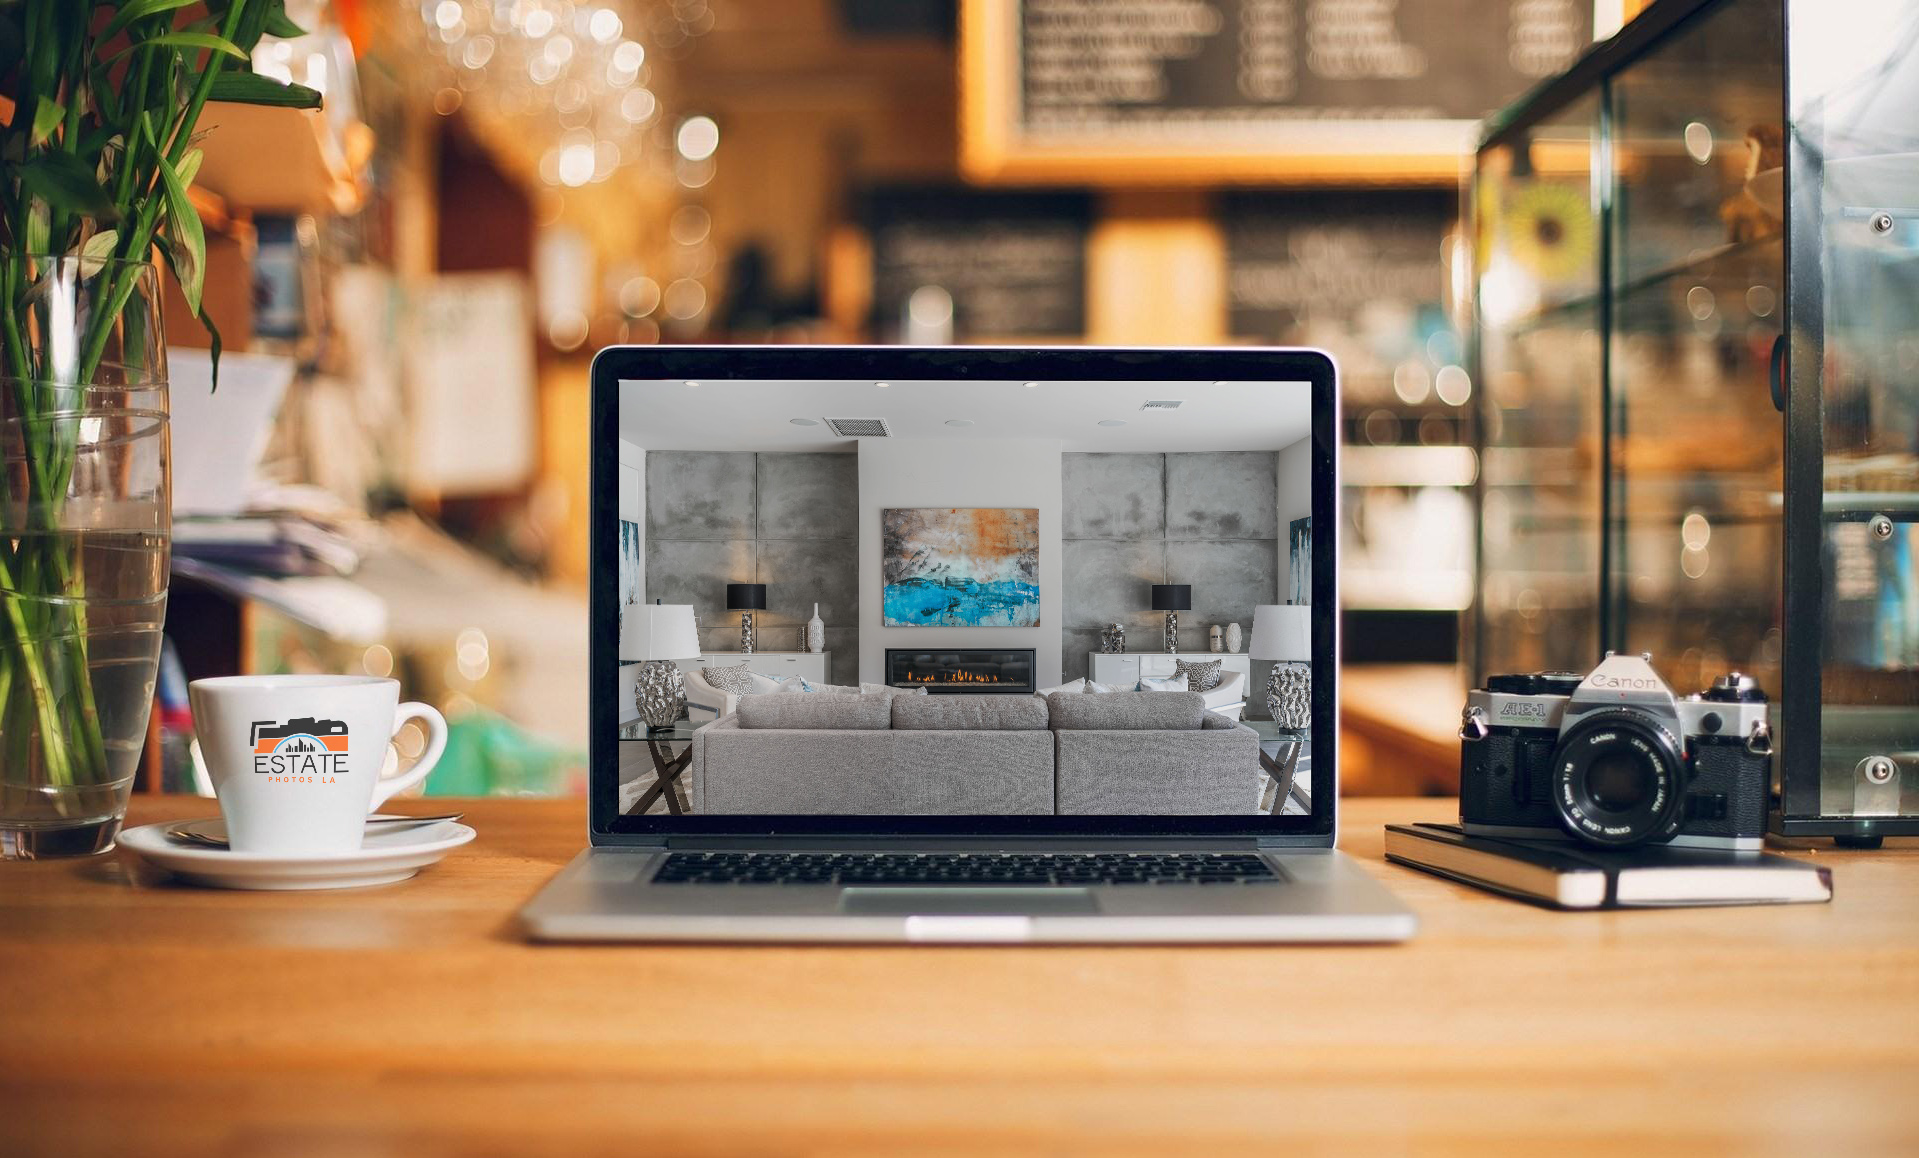 Real Estate Photography and Videography Pricing List